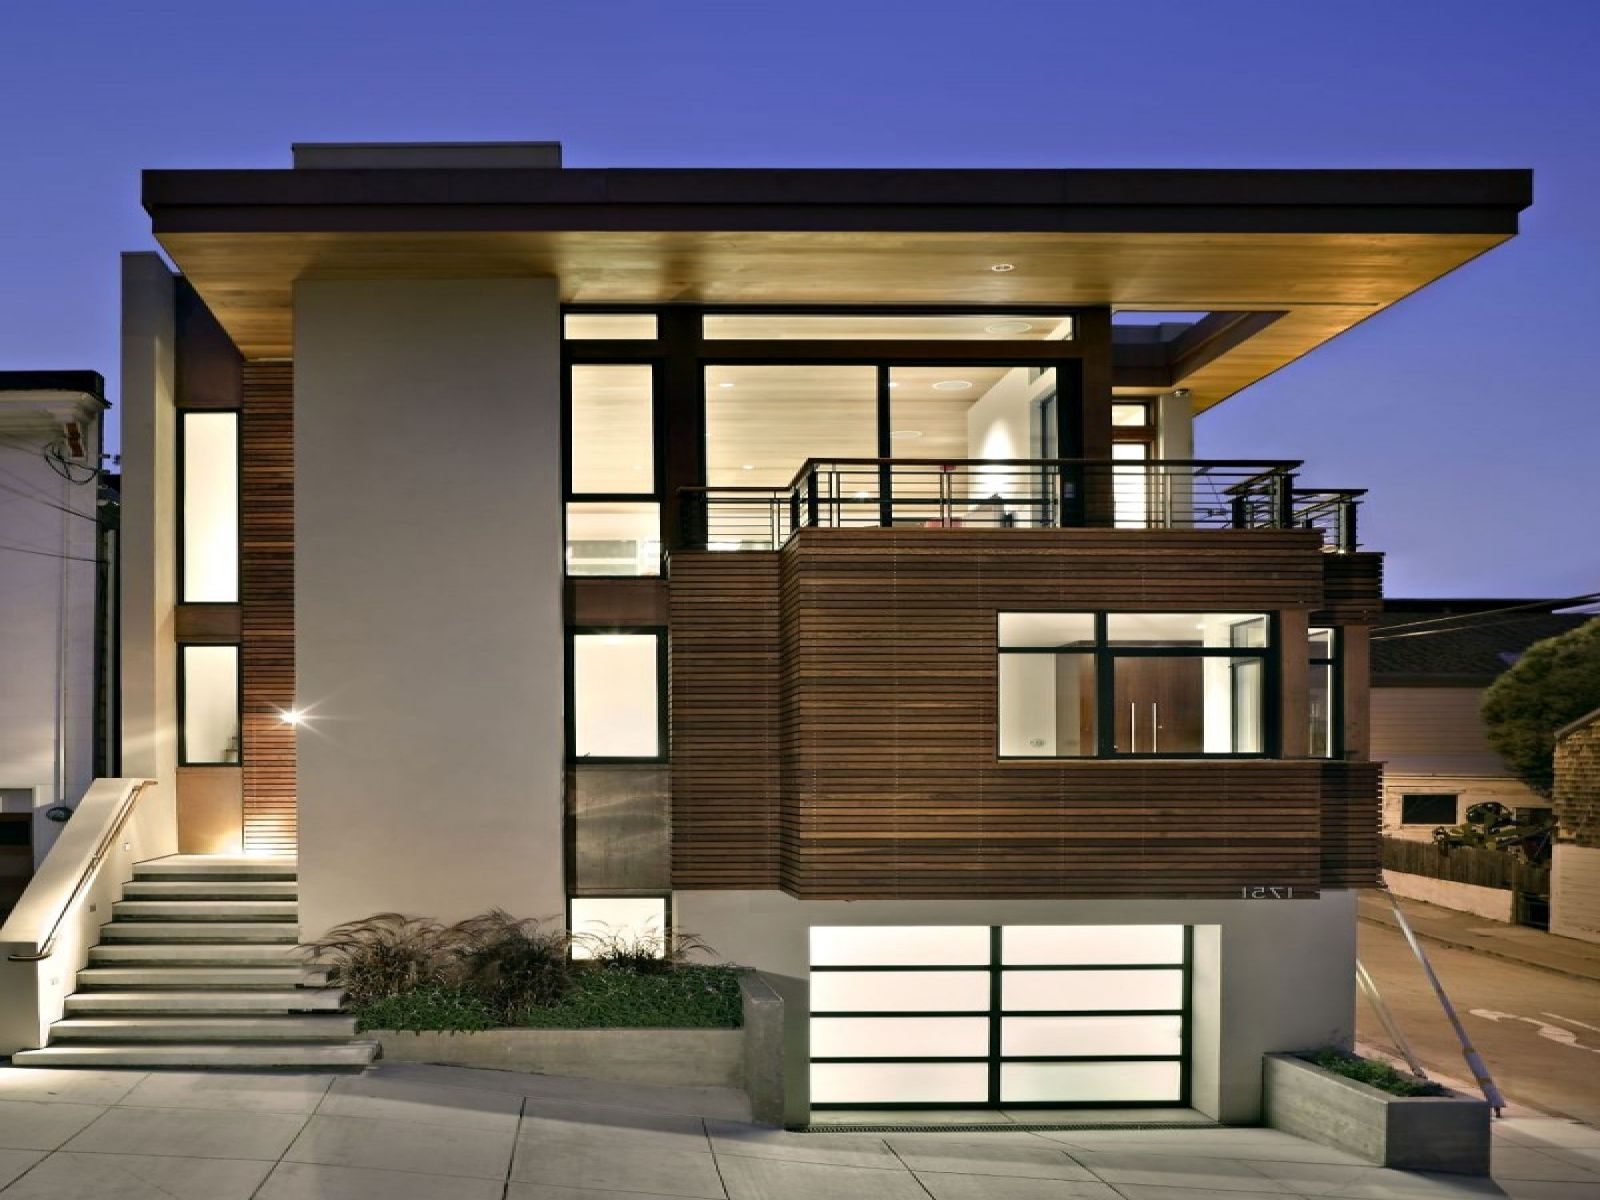 Modern minimalist house beautiful exterior design for for How to design a house exterior